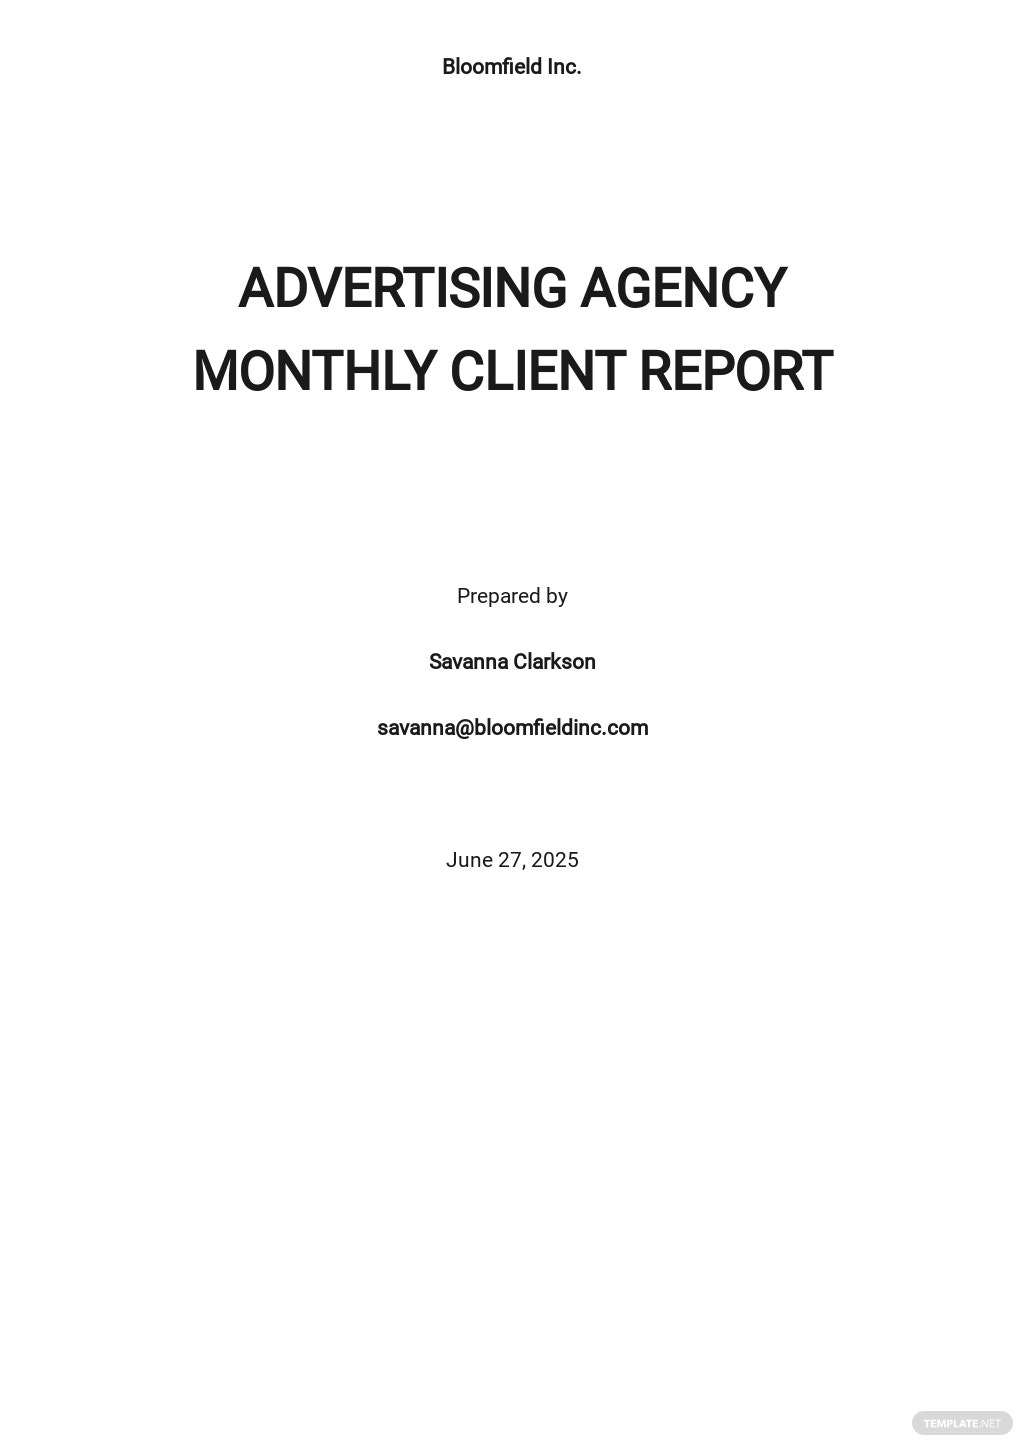 Editable Advertising Agency Monthly Client Report Template.jpe